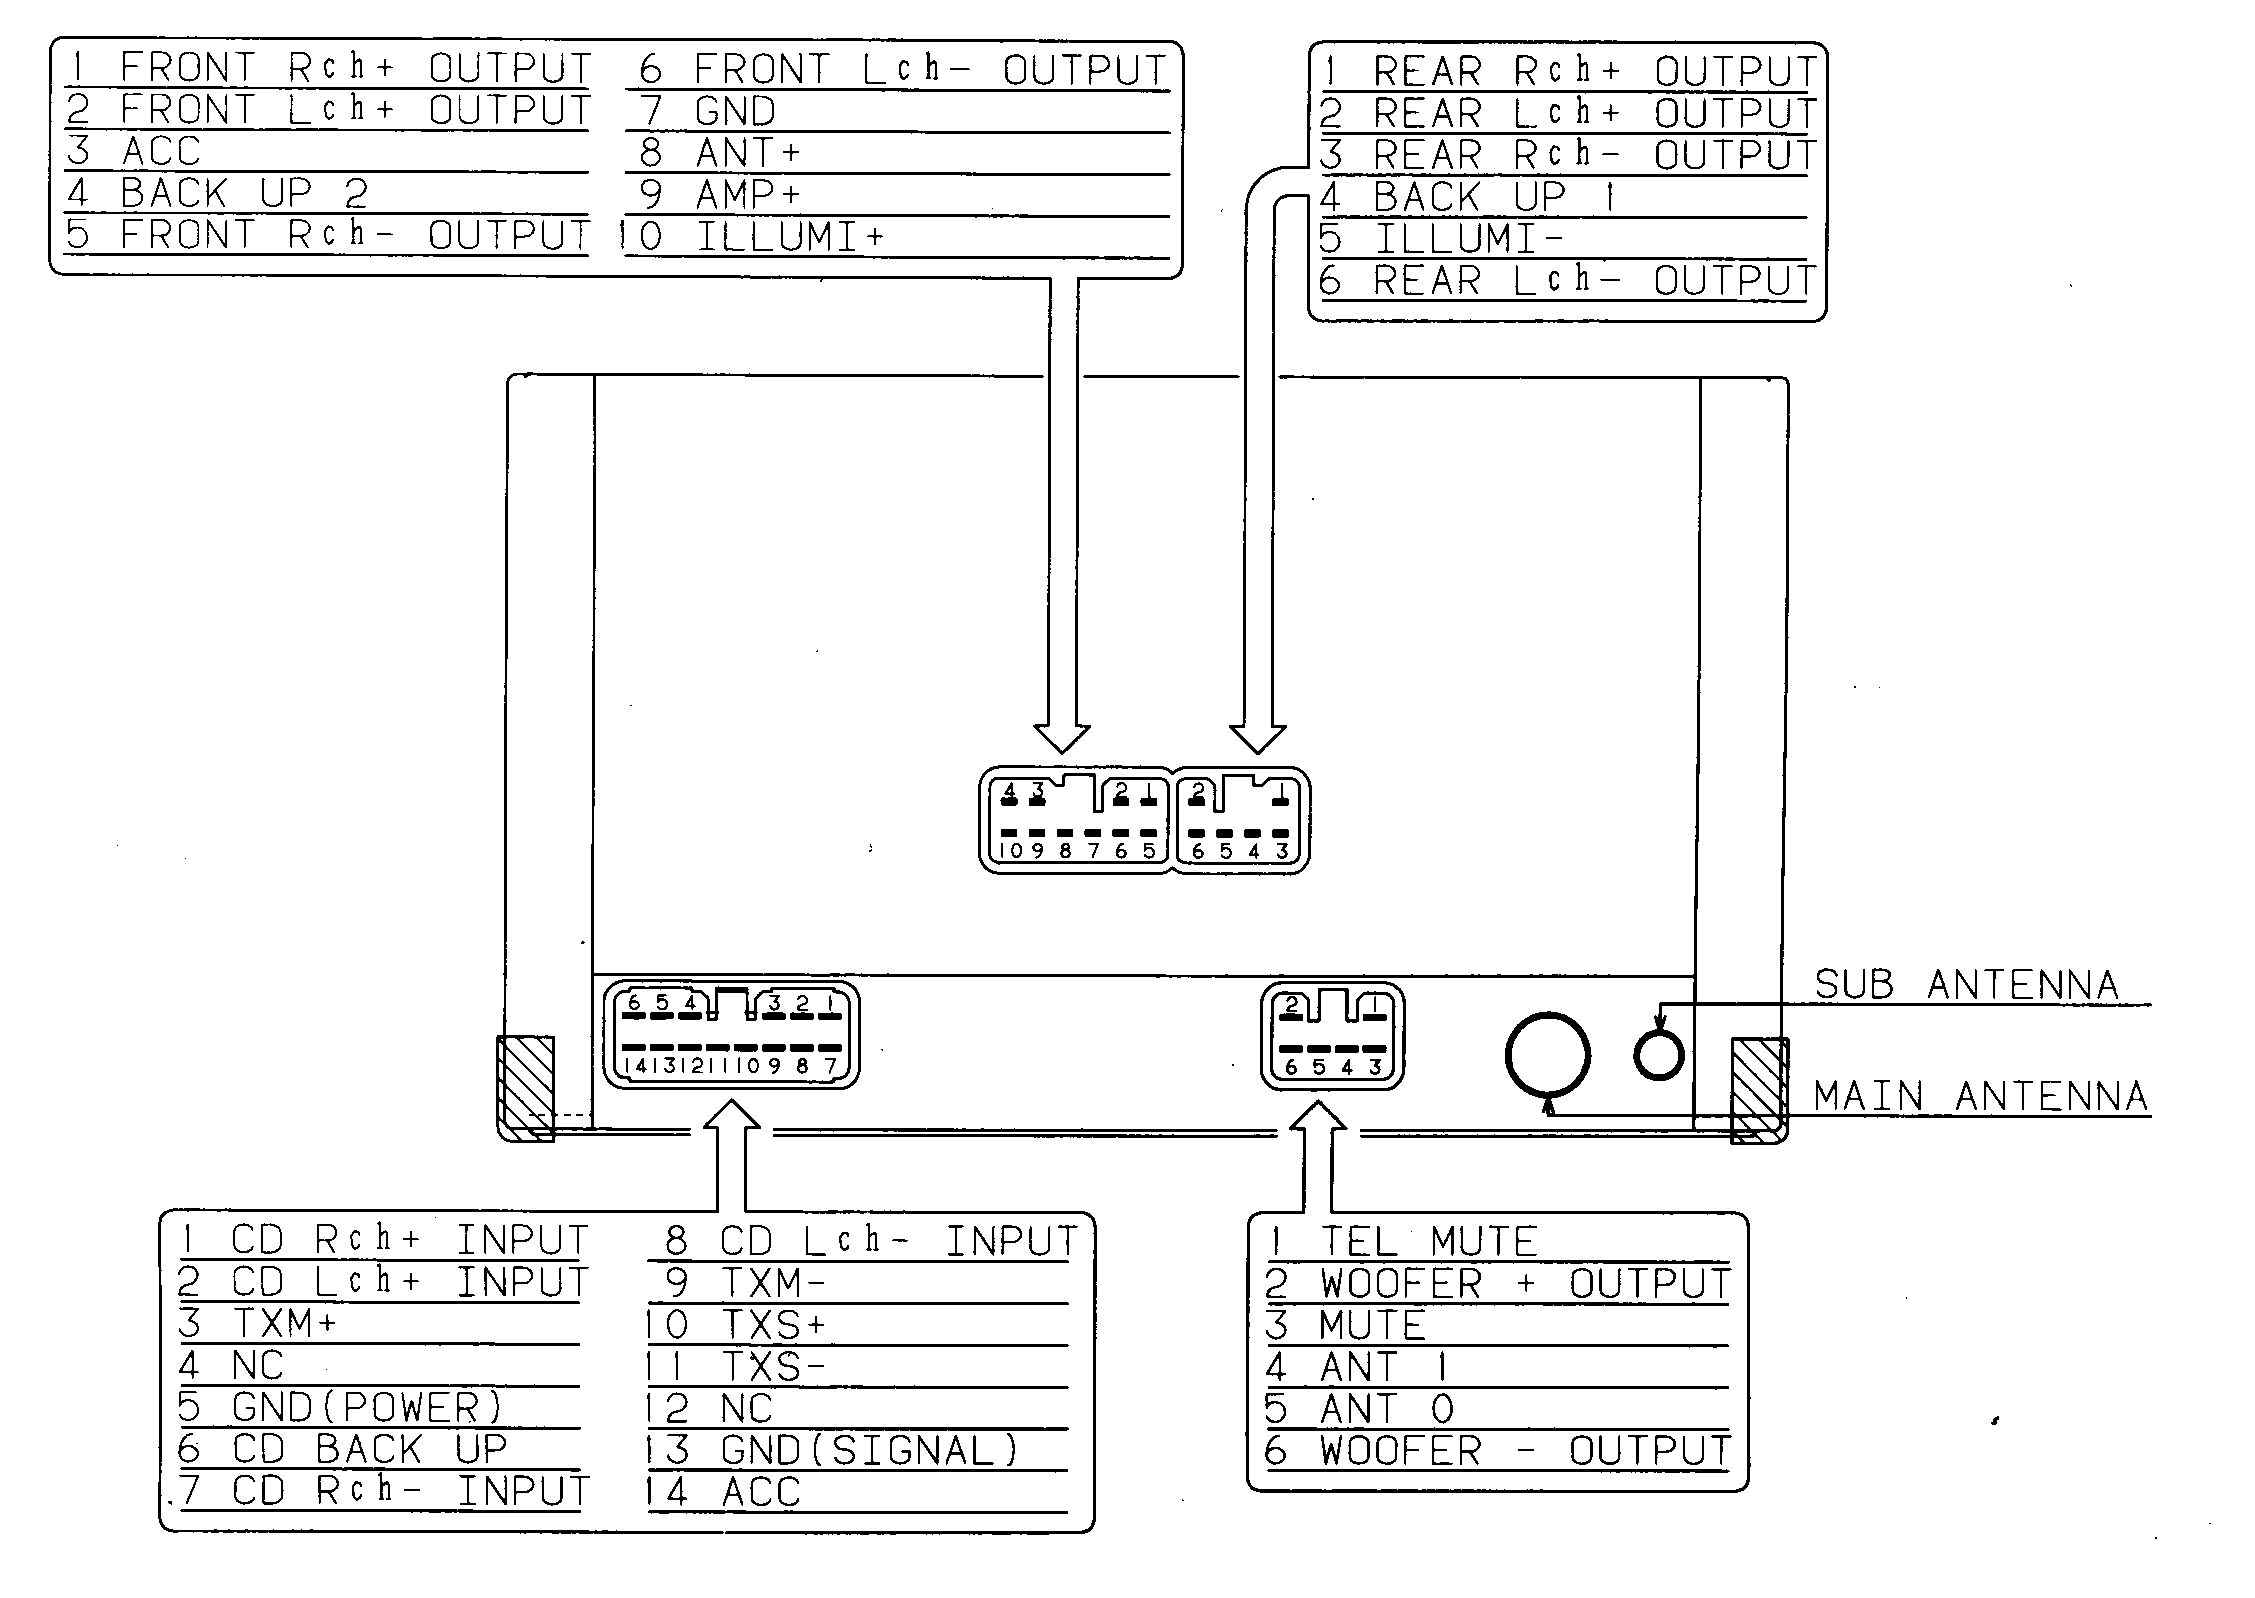 Lexus car stereo wiring diagram harness pinout connector wire?zoom\\\\\\\\\\\\\\\\\\\\\\\\\\\\\\\\\\\\\\\\\\\\\\\\\\\\\\\\\\\\\\\=2.625u0026resize\\\\\\\\\\\\\\\\\\\\\\\\\\\\\\\\\\\\\\\\\\\\\\\\\\\\\\\\\\\\\\\=665%2C471 lexus is200 audio wiring diagram wiring diagram libraries